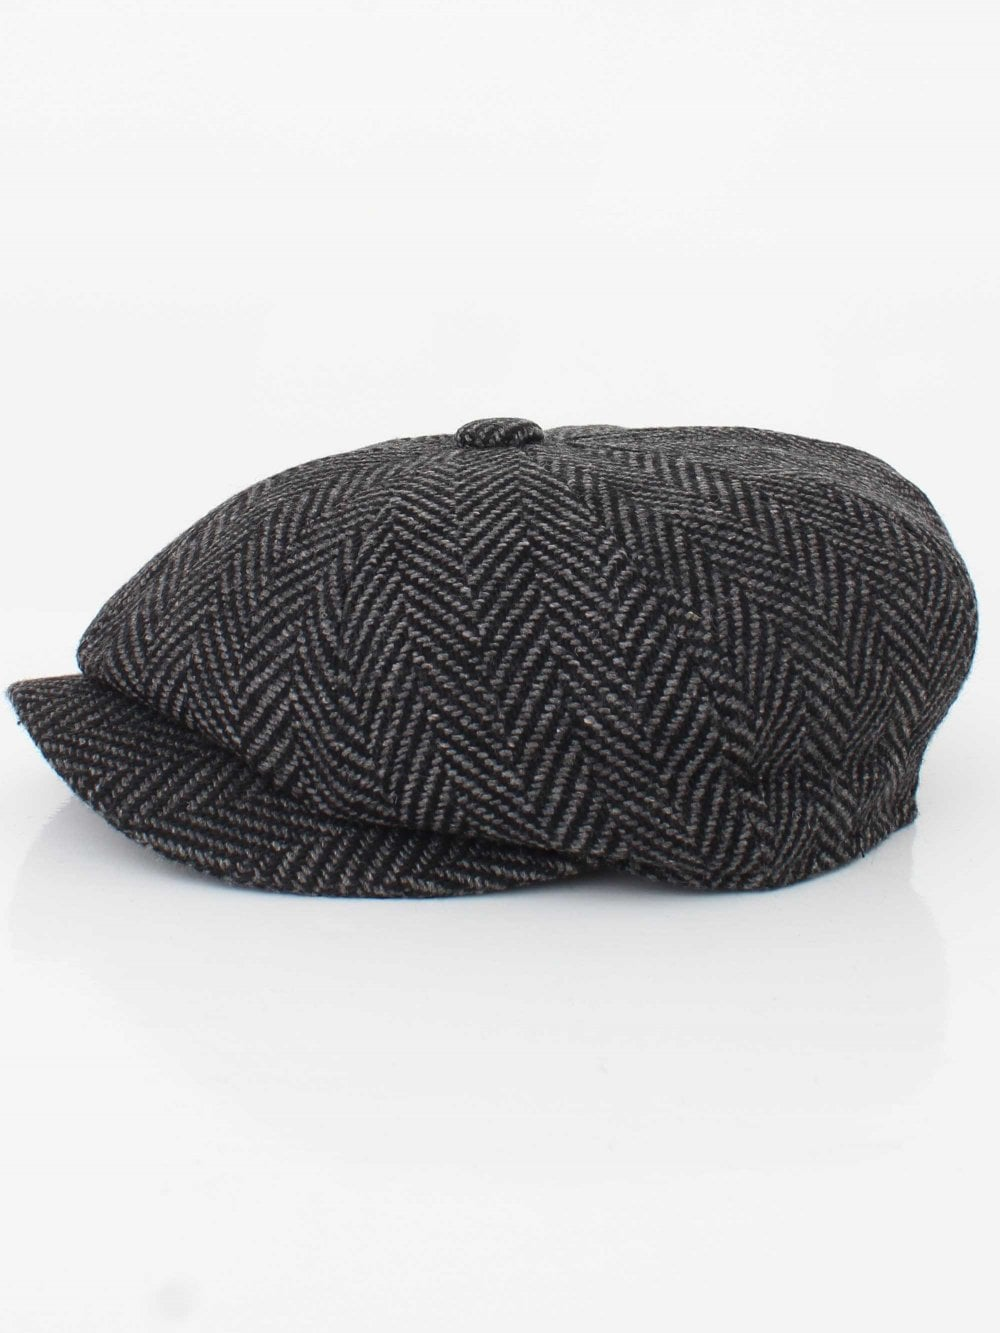 Barbour Mixed Tweed Bakerboy Cap in Grey  0acd590dcea